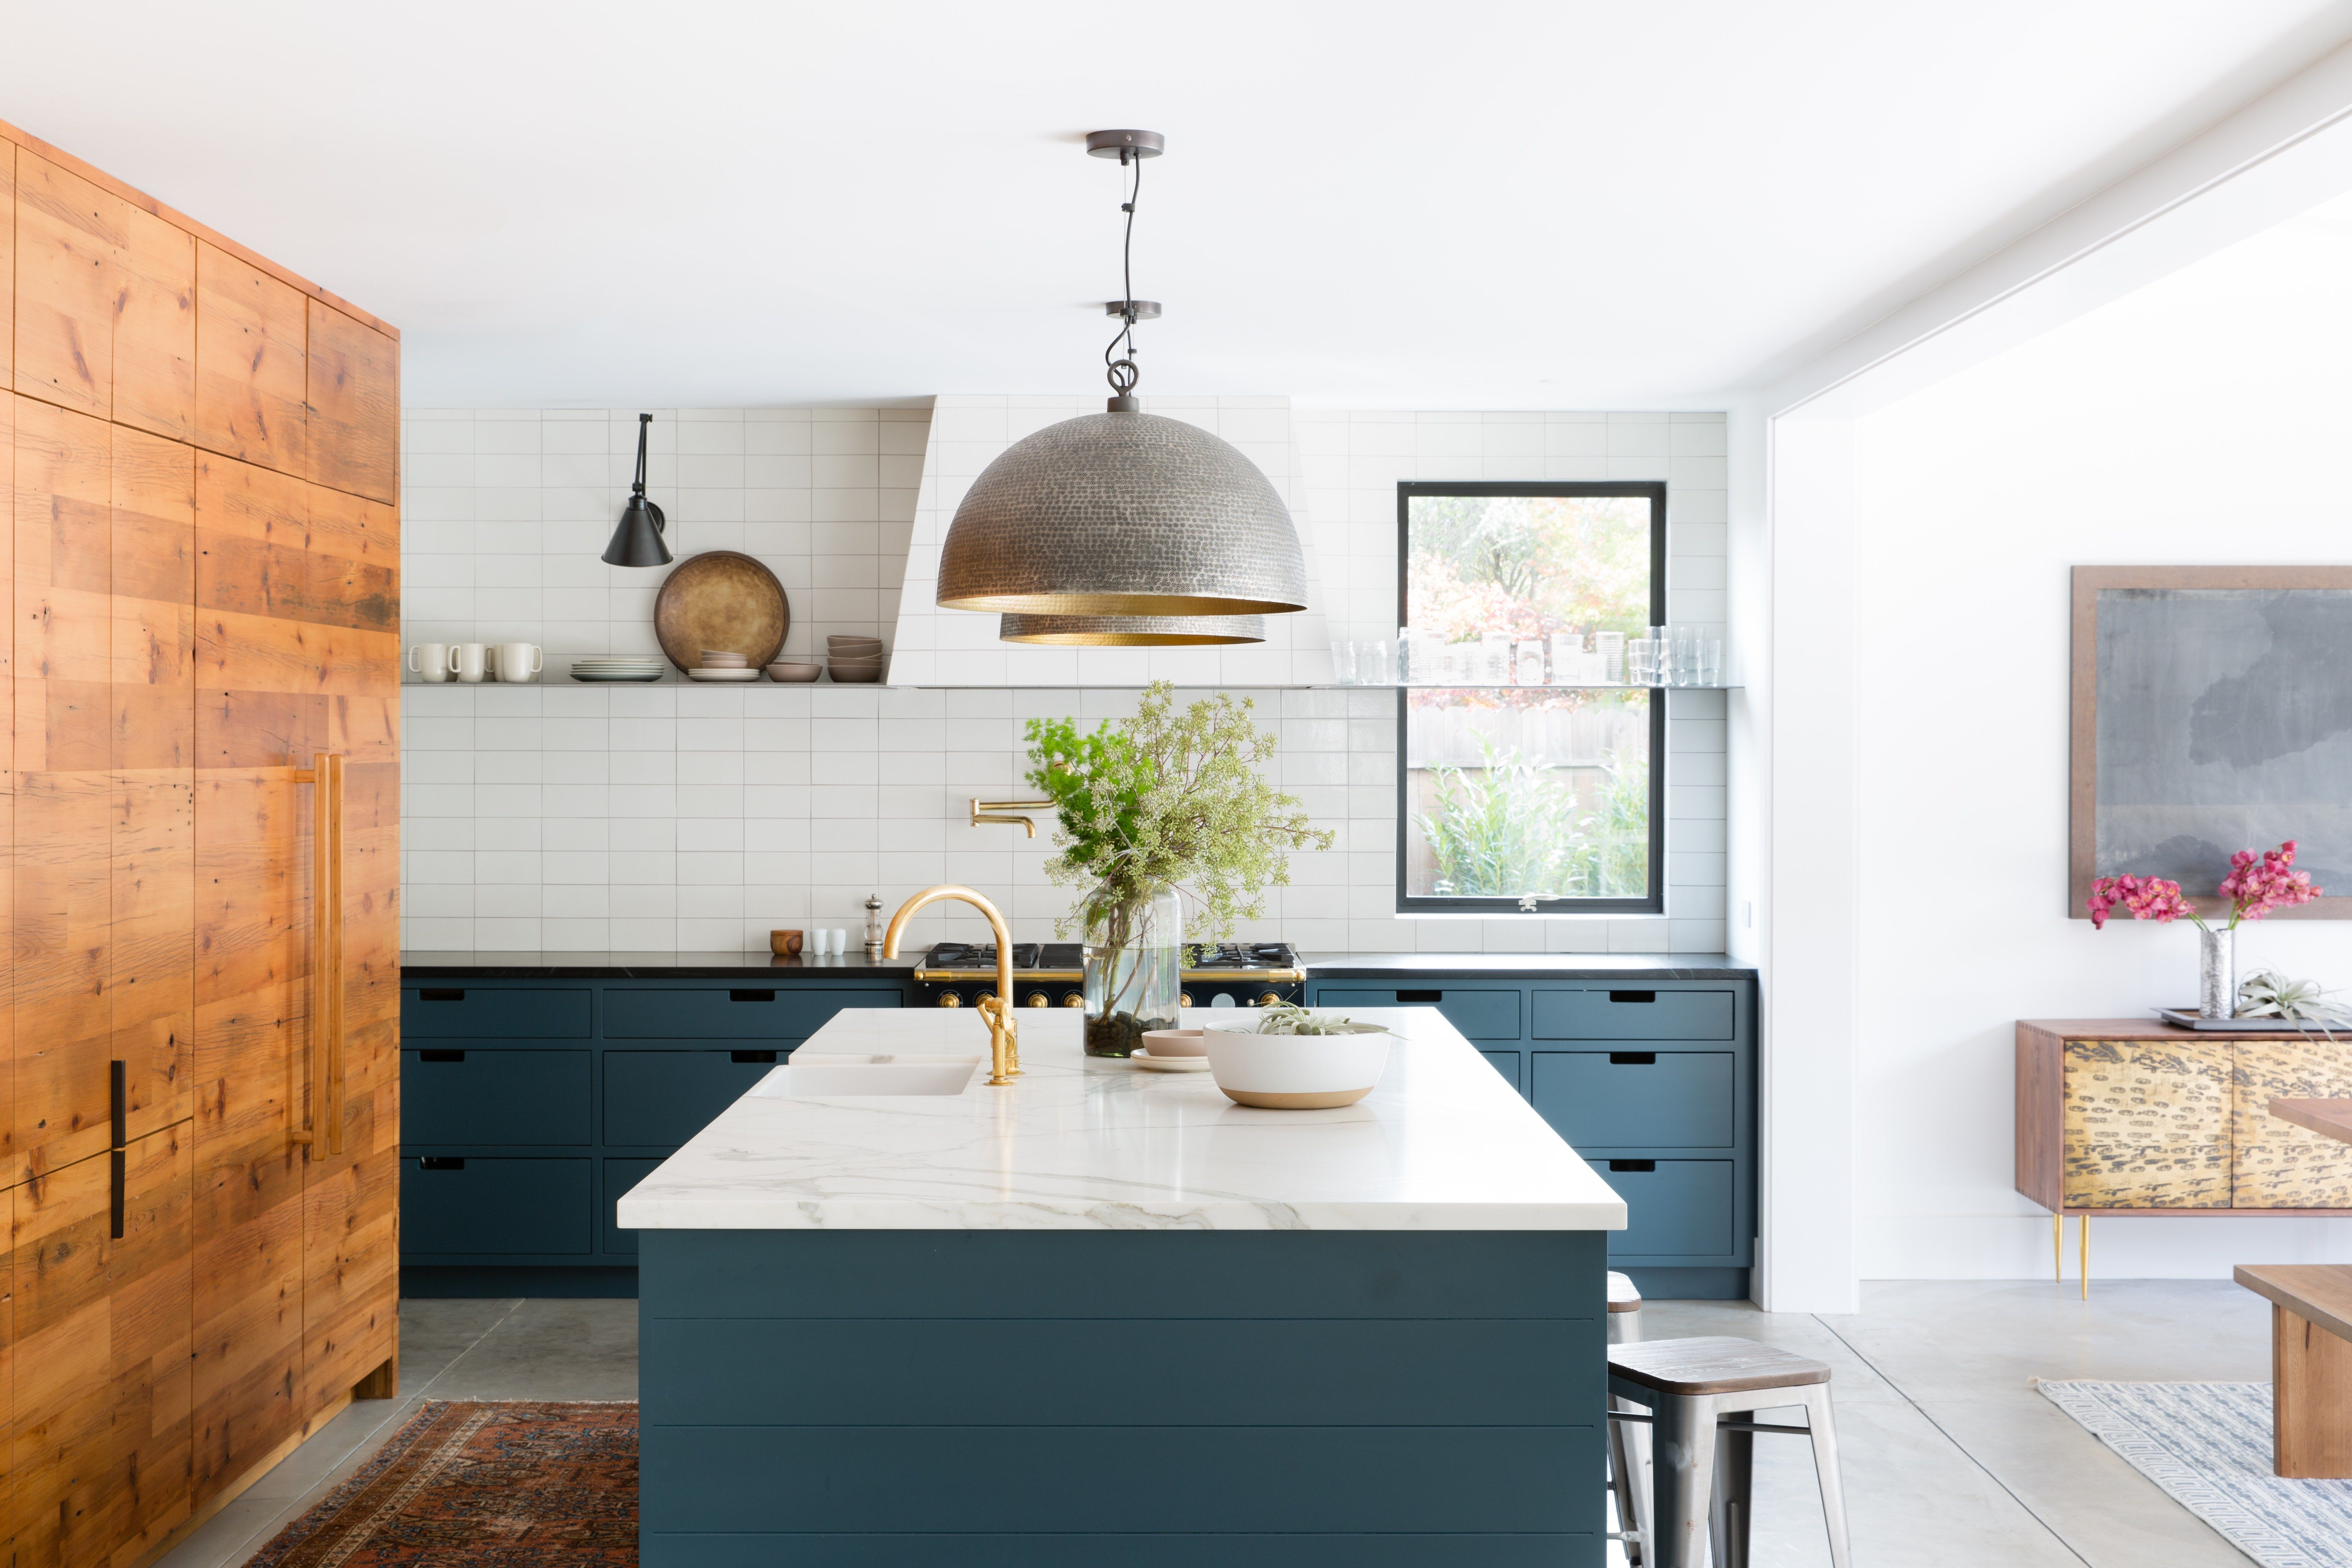 How Two Tone Kitchen Cabinets Can Transform Your Space